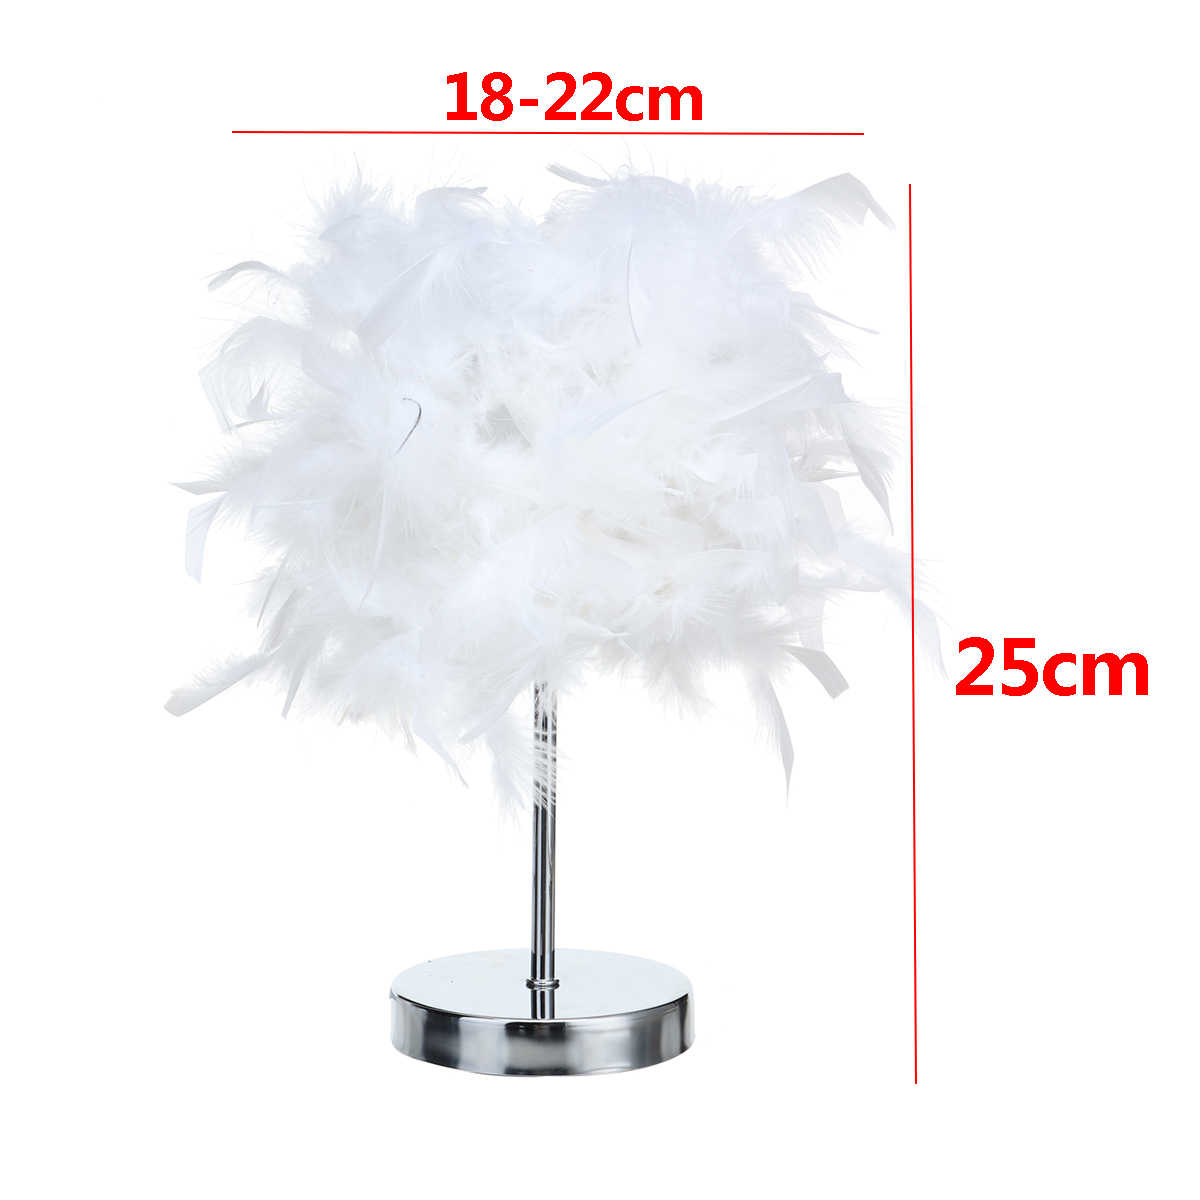 Feather Shade Metal Table Lamp 220V Bedside Desk Vintage Night Light Christmas Decor Soft Vintage Bedroom Study Room White